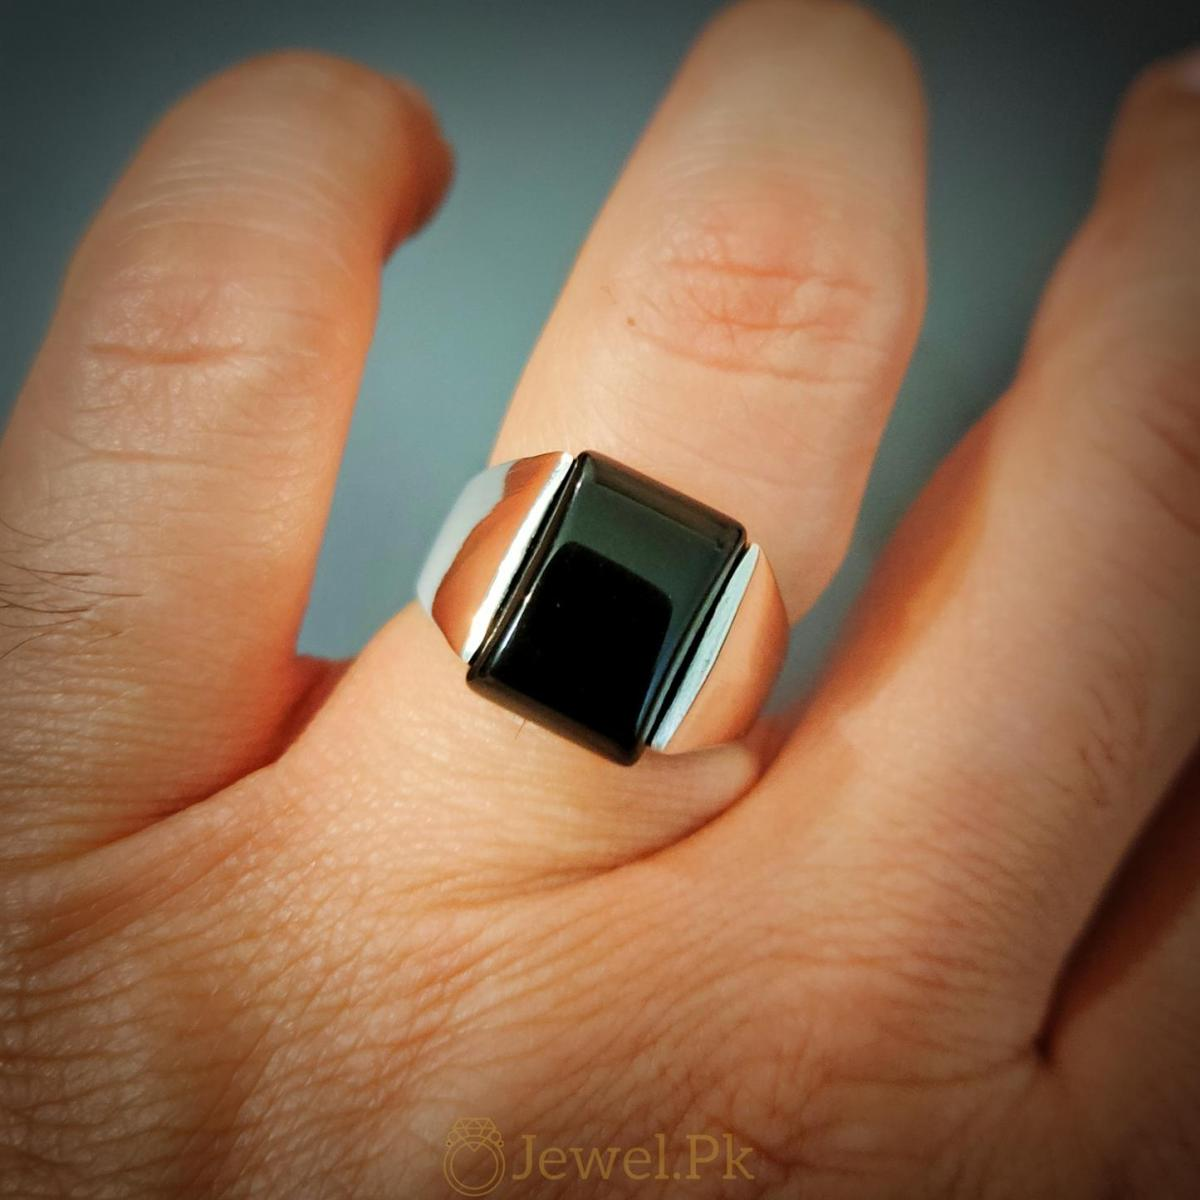 Very Decent Black Aqeeq Ring for man Decent and Beautiful 3 natural gemstones pakistan + 925 silver jewelry online